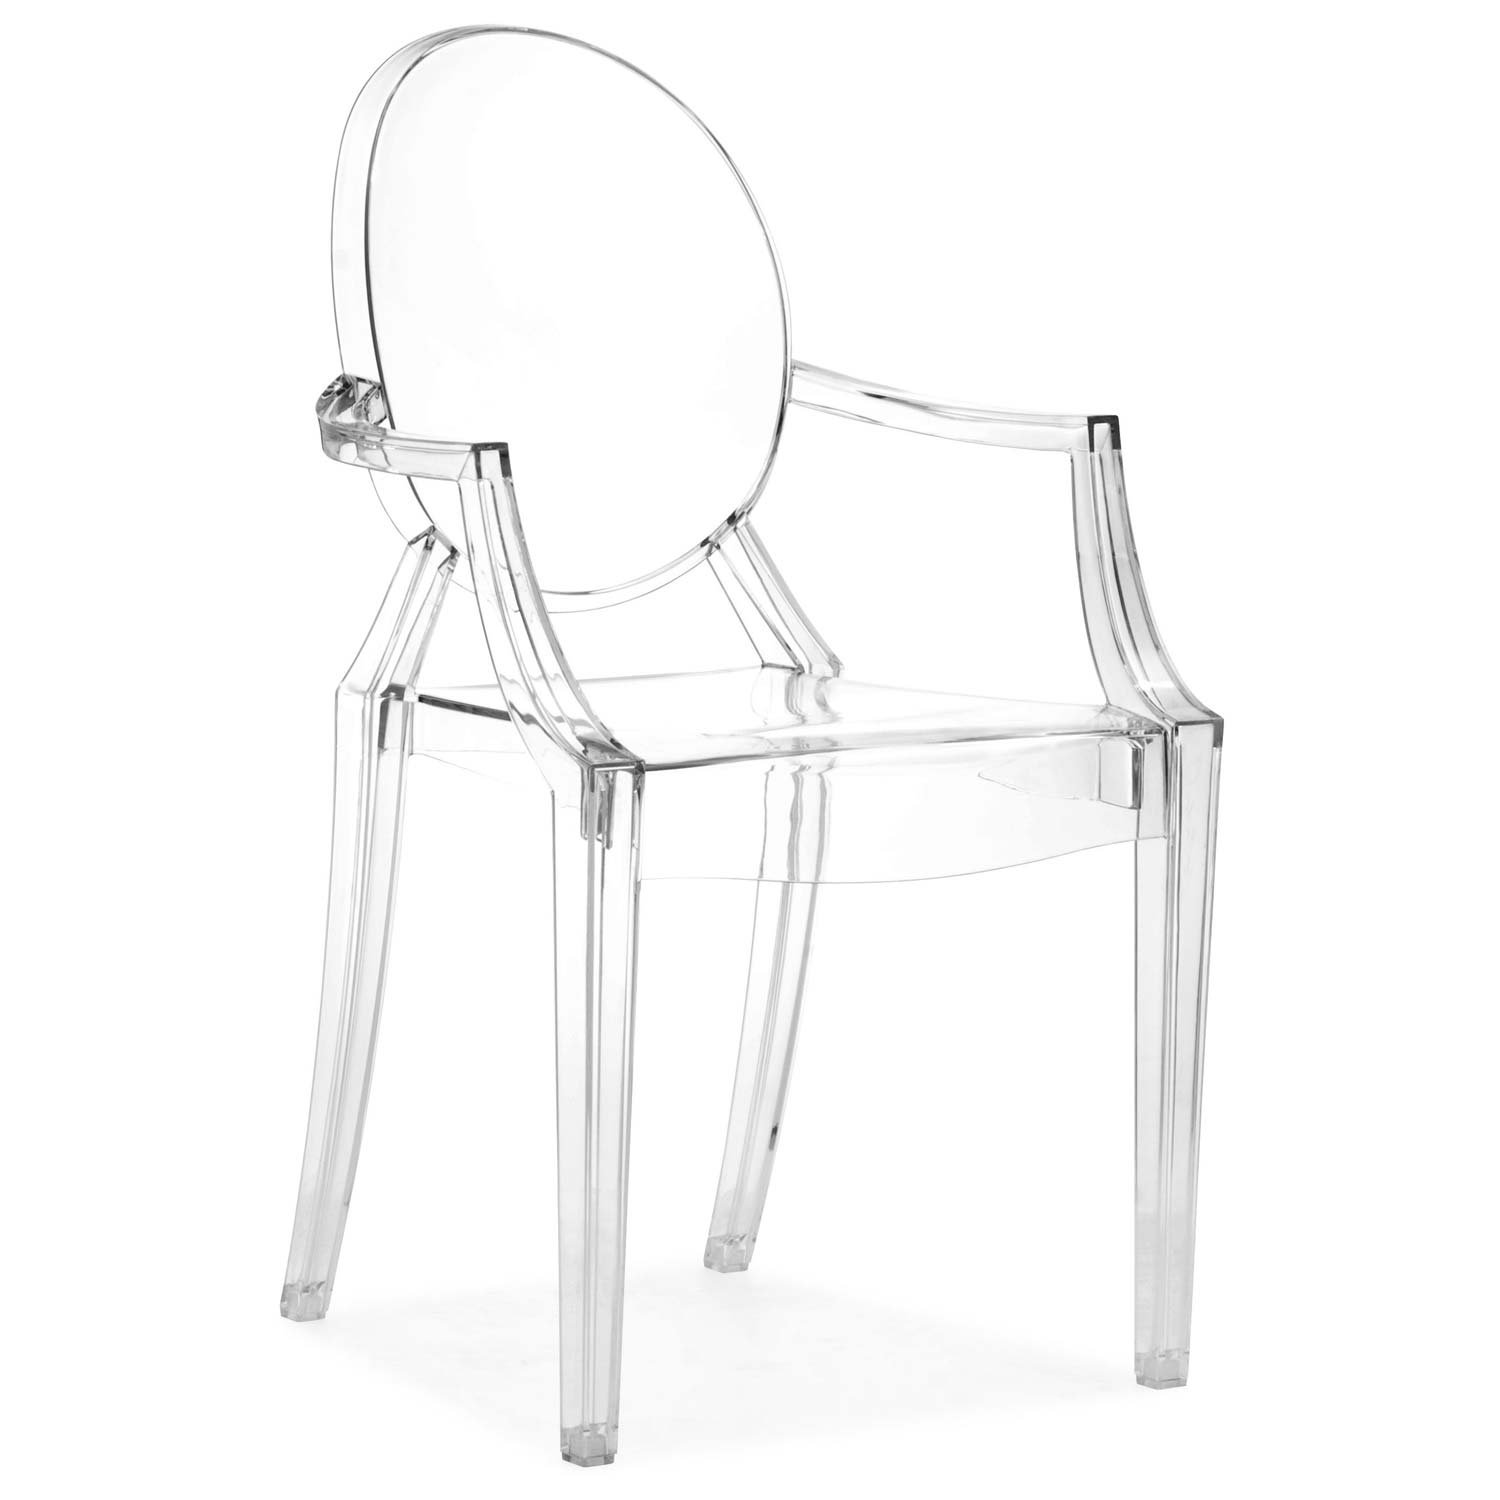 Anime Ghost Style Dining Chair - ZM-10610X